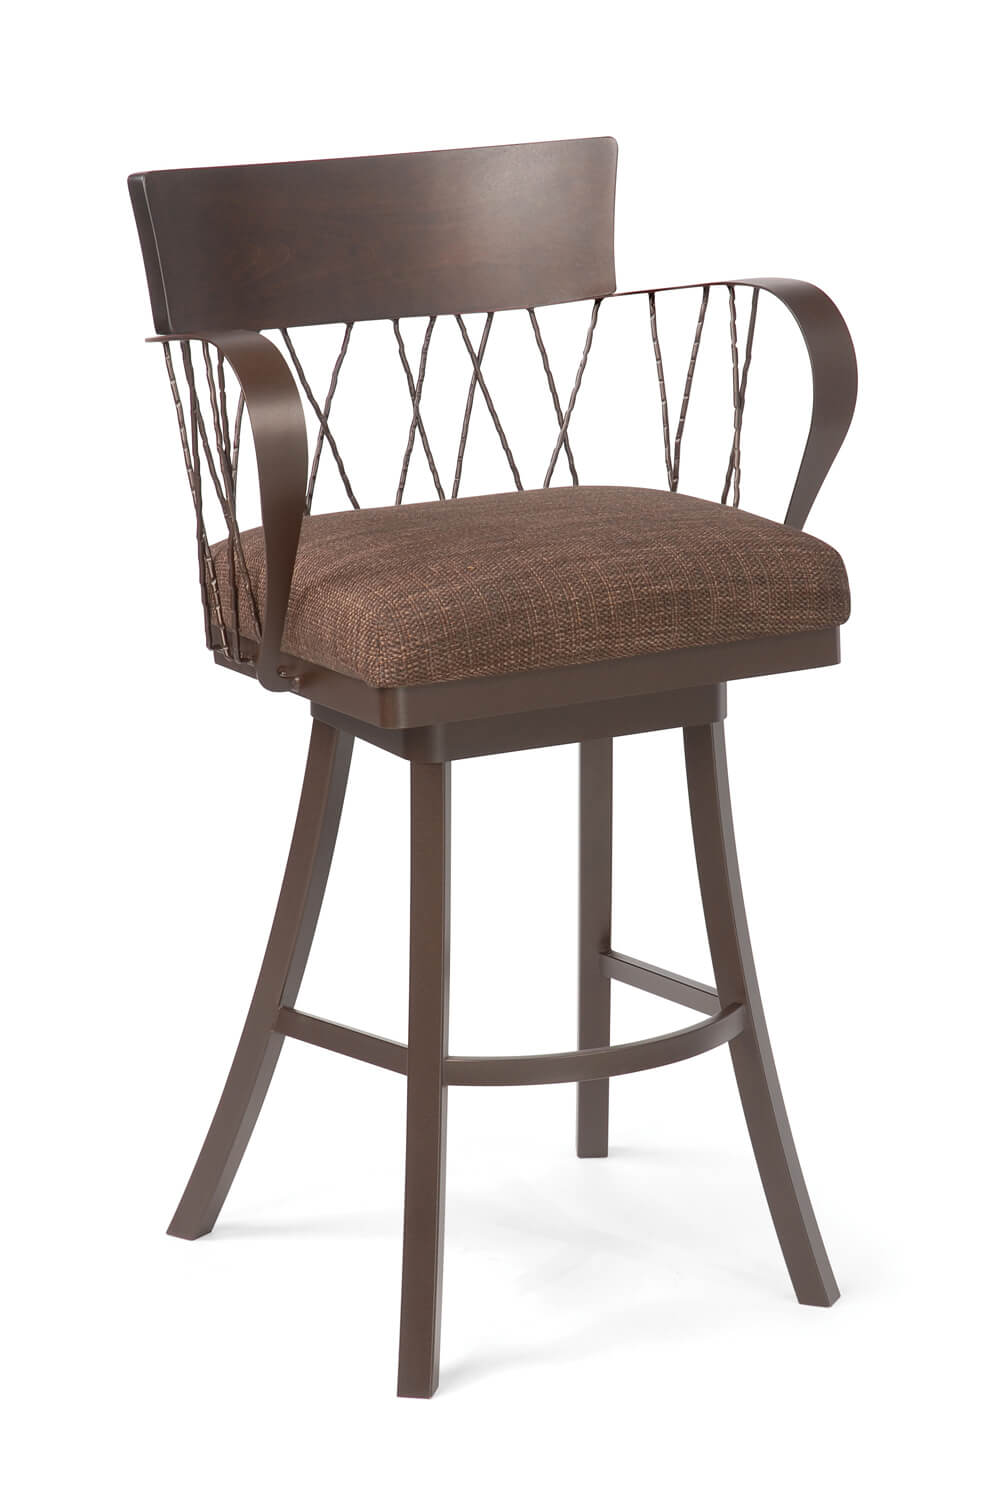 Bambusa Wide Swivel Counter Or Bar Stool W Arms Free